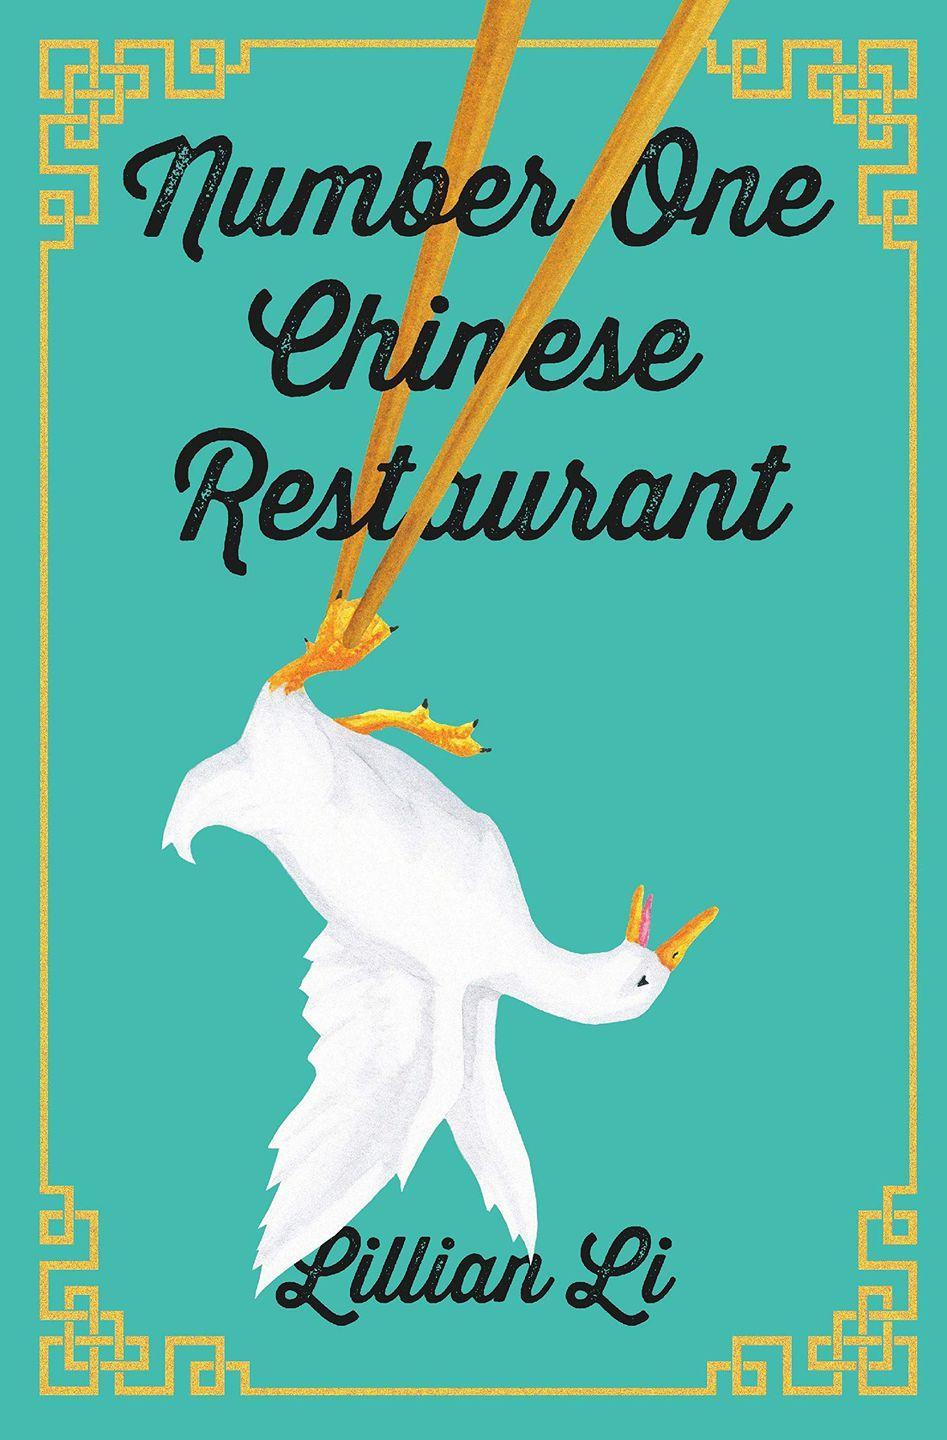 "<p>This twenty-seven-year-old author has drawn on her own experience as a former waitress in a Chinese restaurant in the US for this funny, brilliant and highly enjoyable novel set in the Beijing Duck House, a popular family-owned establishment in Maryland. Lee goes behind the scenes and weaves a multigenerational narrative full of decades-long grudges, intrigues and complex characters, whose lives are put to the test when disaster strikes. </p><p><em>Out in February<br><br><a href=""https://www.amazon.co.uk/Number-One-Chinese-Restaurant-Lillian/dp/1911590073/ref=sr_1_fkmr0_1?s=books&ie=UTF8&qid=1545238652&sr=1-1-fkmr0&keywords=Number+One+Chinese+Restaurant+Lillian+Lee+pushkin"" rel=""nofollow noopener"" target=""_blank"" data-ylk=""slk:BUY NOW"" class=""link rapid-noclick-resp"">BUY NOW</a></em></p>"